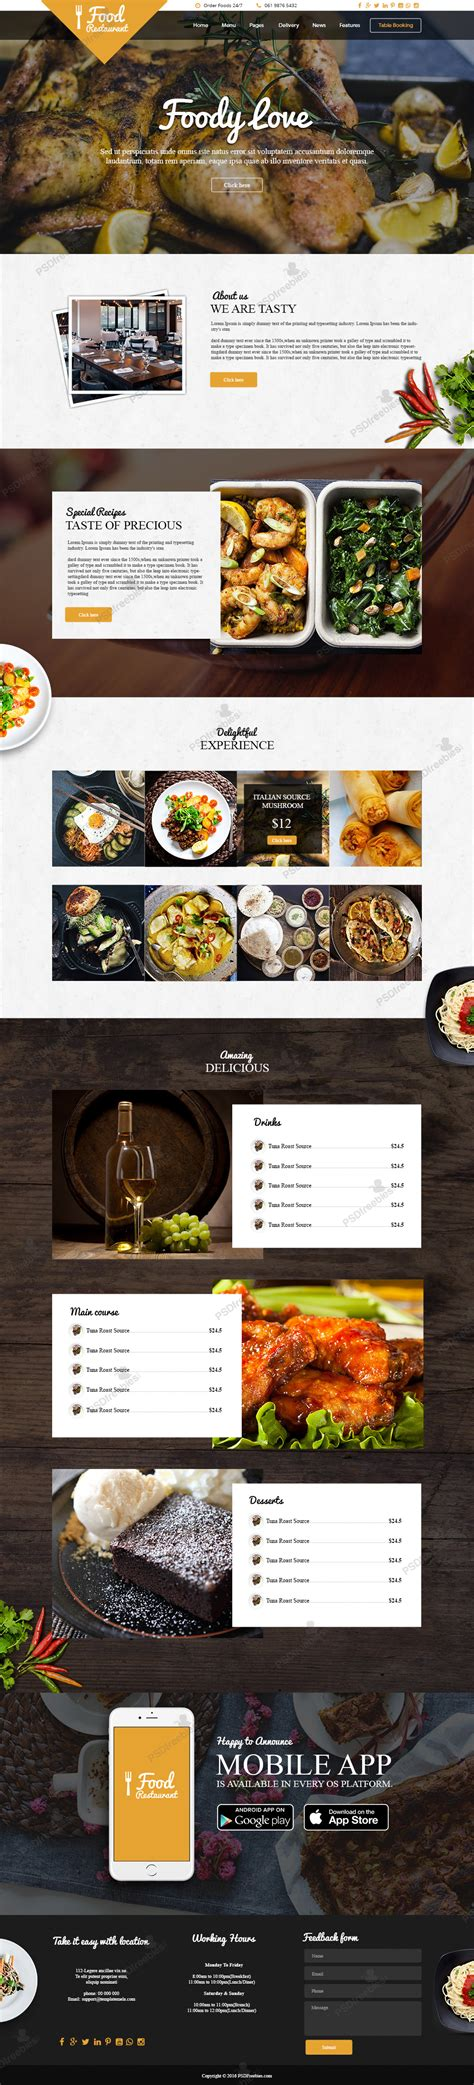 food template psd food and restaurant website free psd template